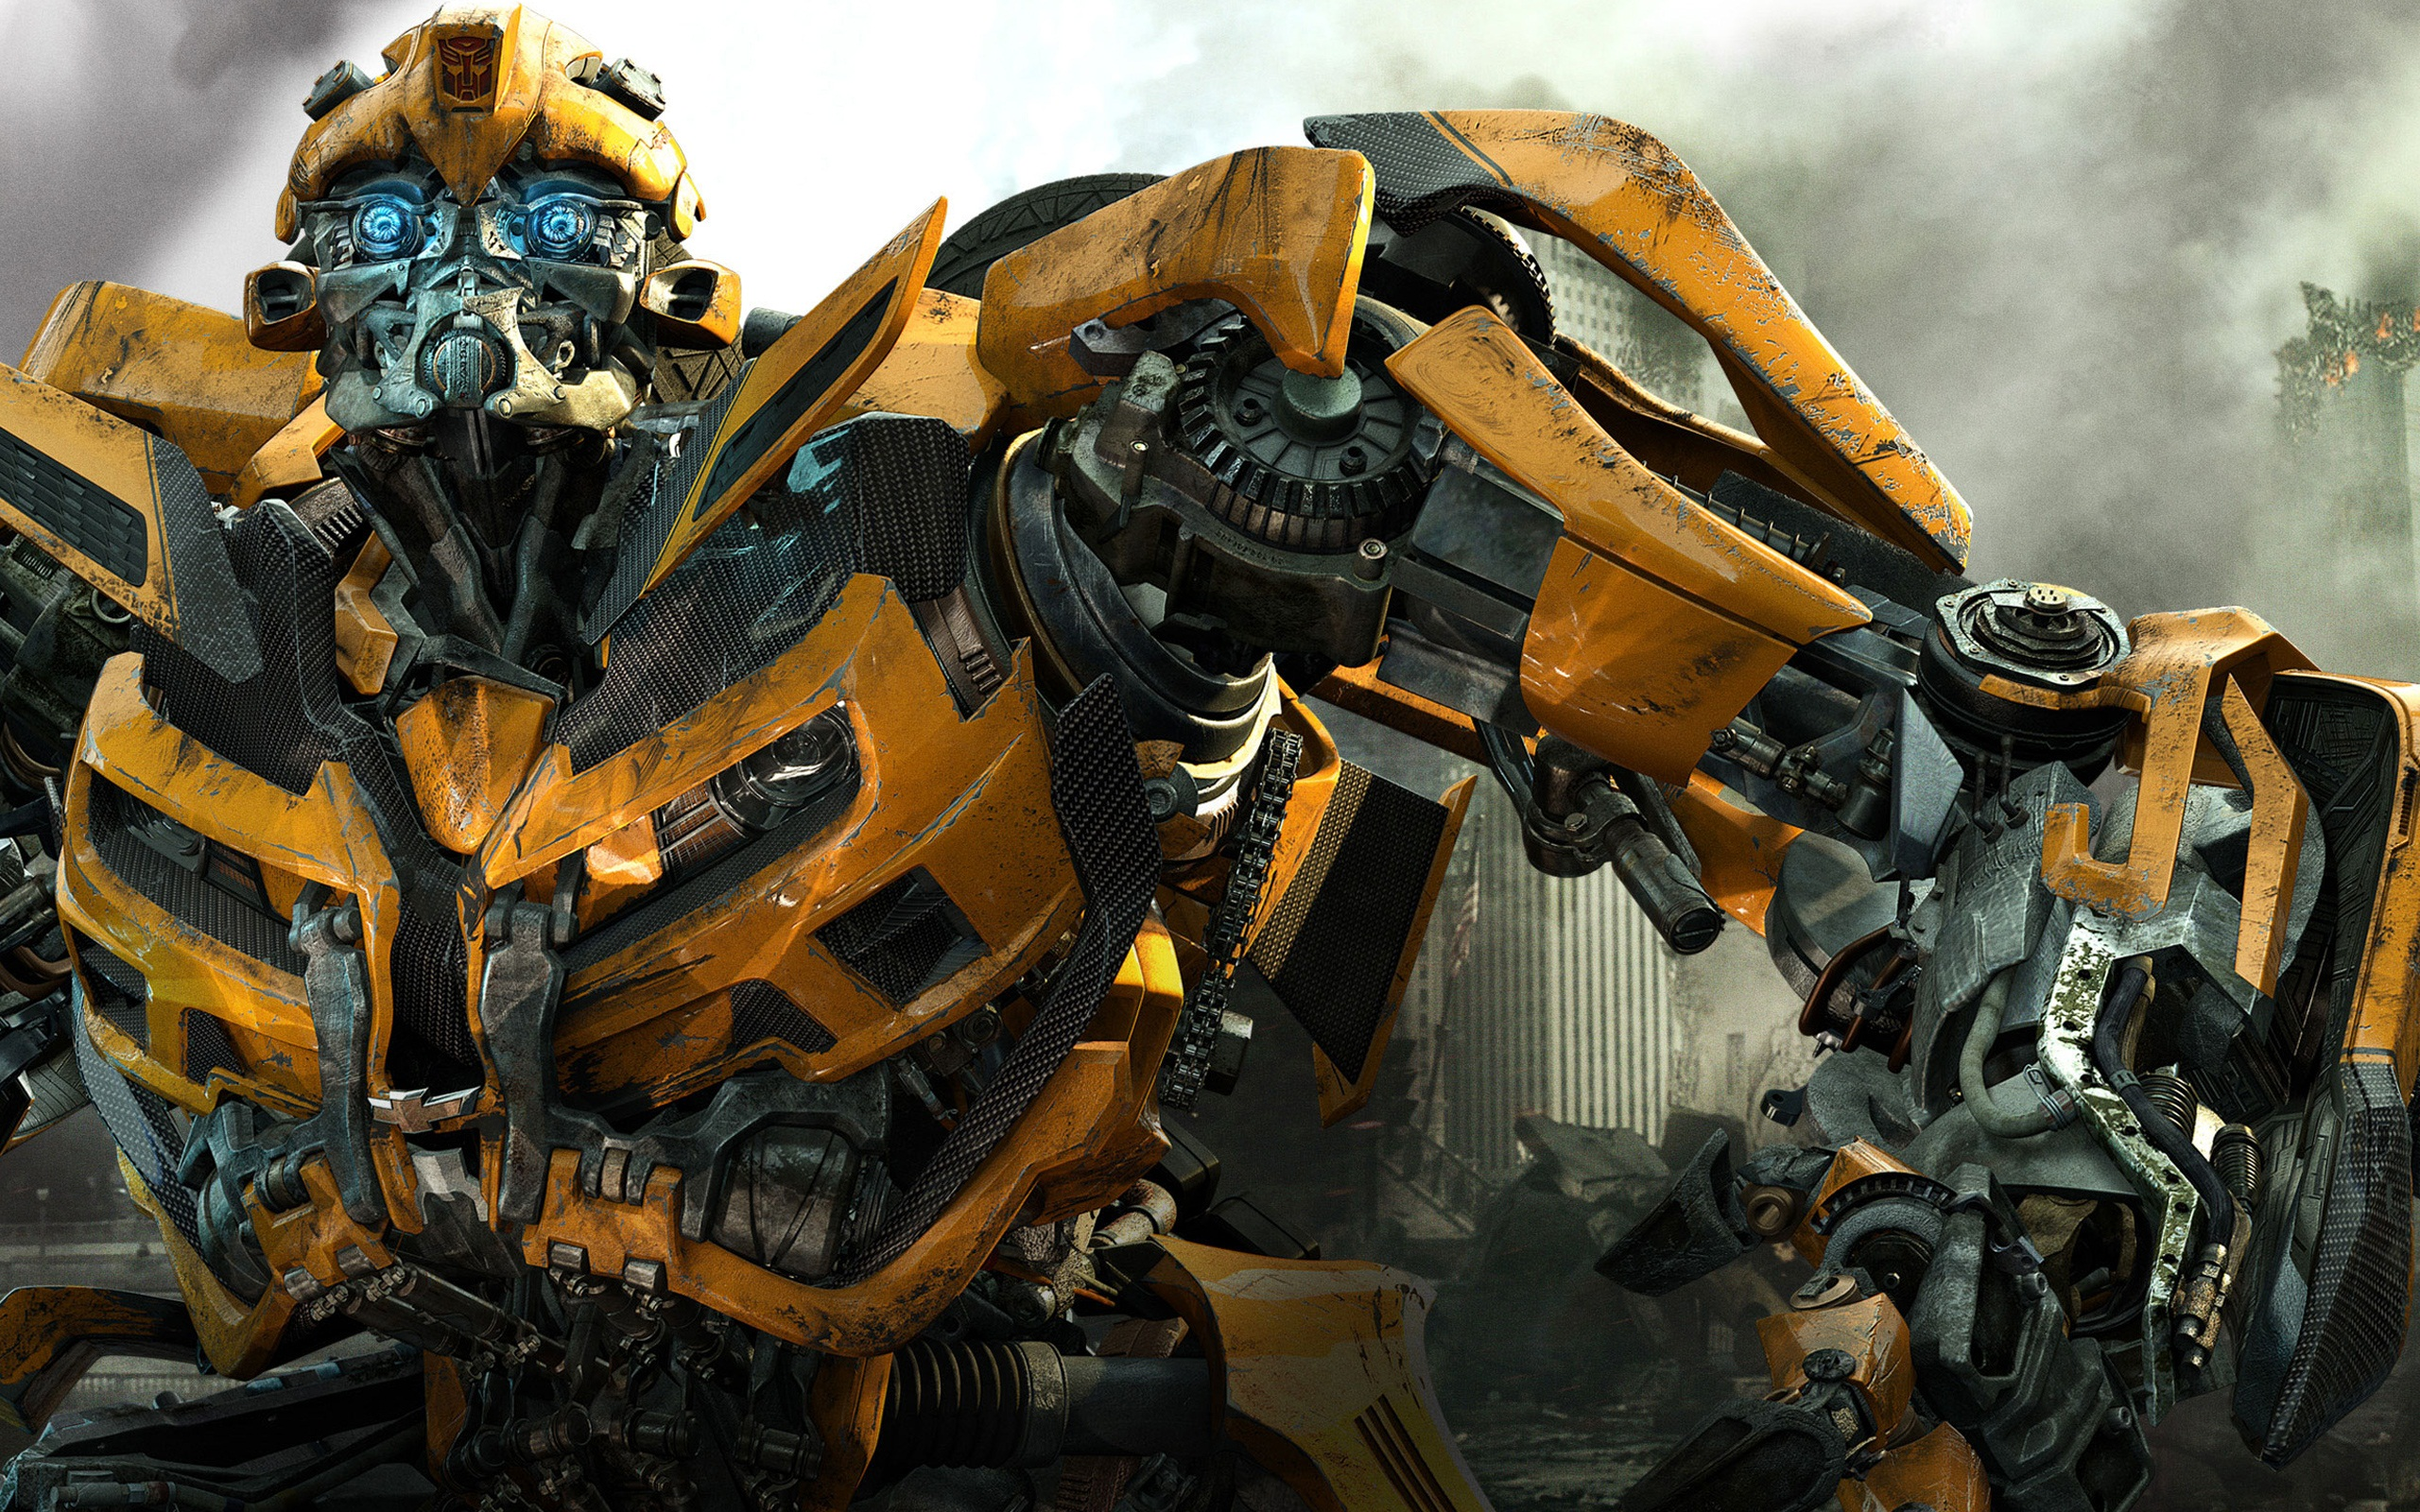 Bumblebee Wallpapers 4k For Your Phone And Desktop Screen